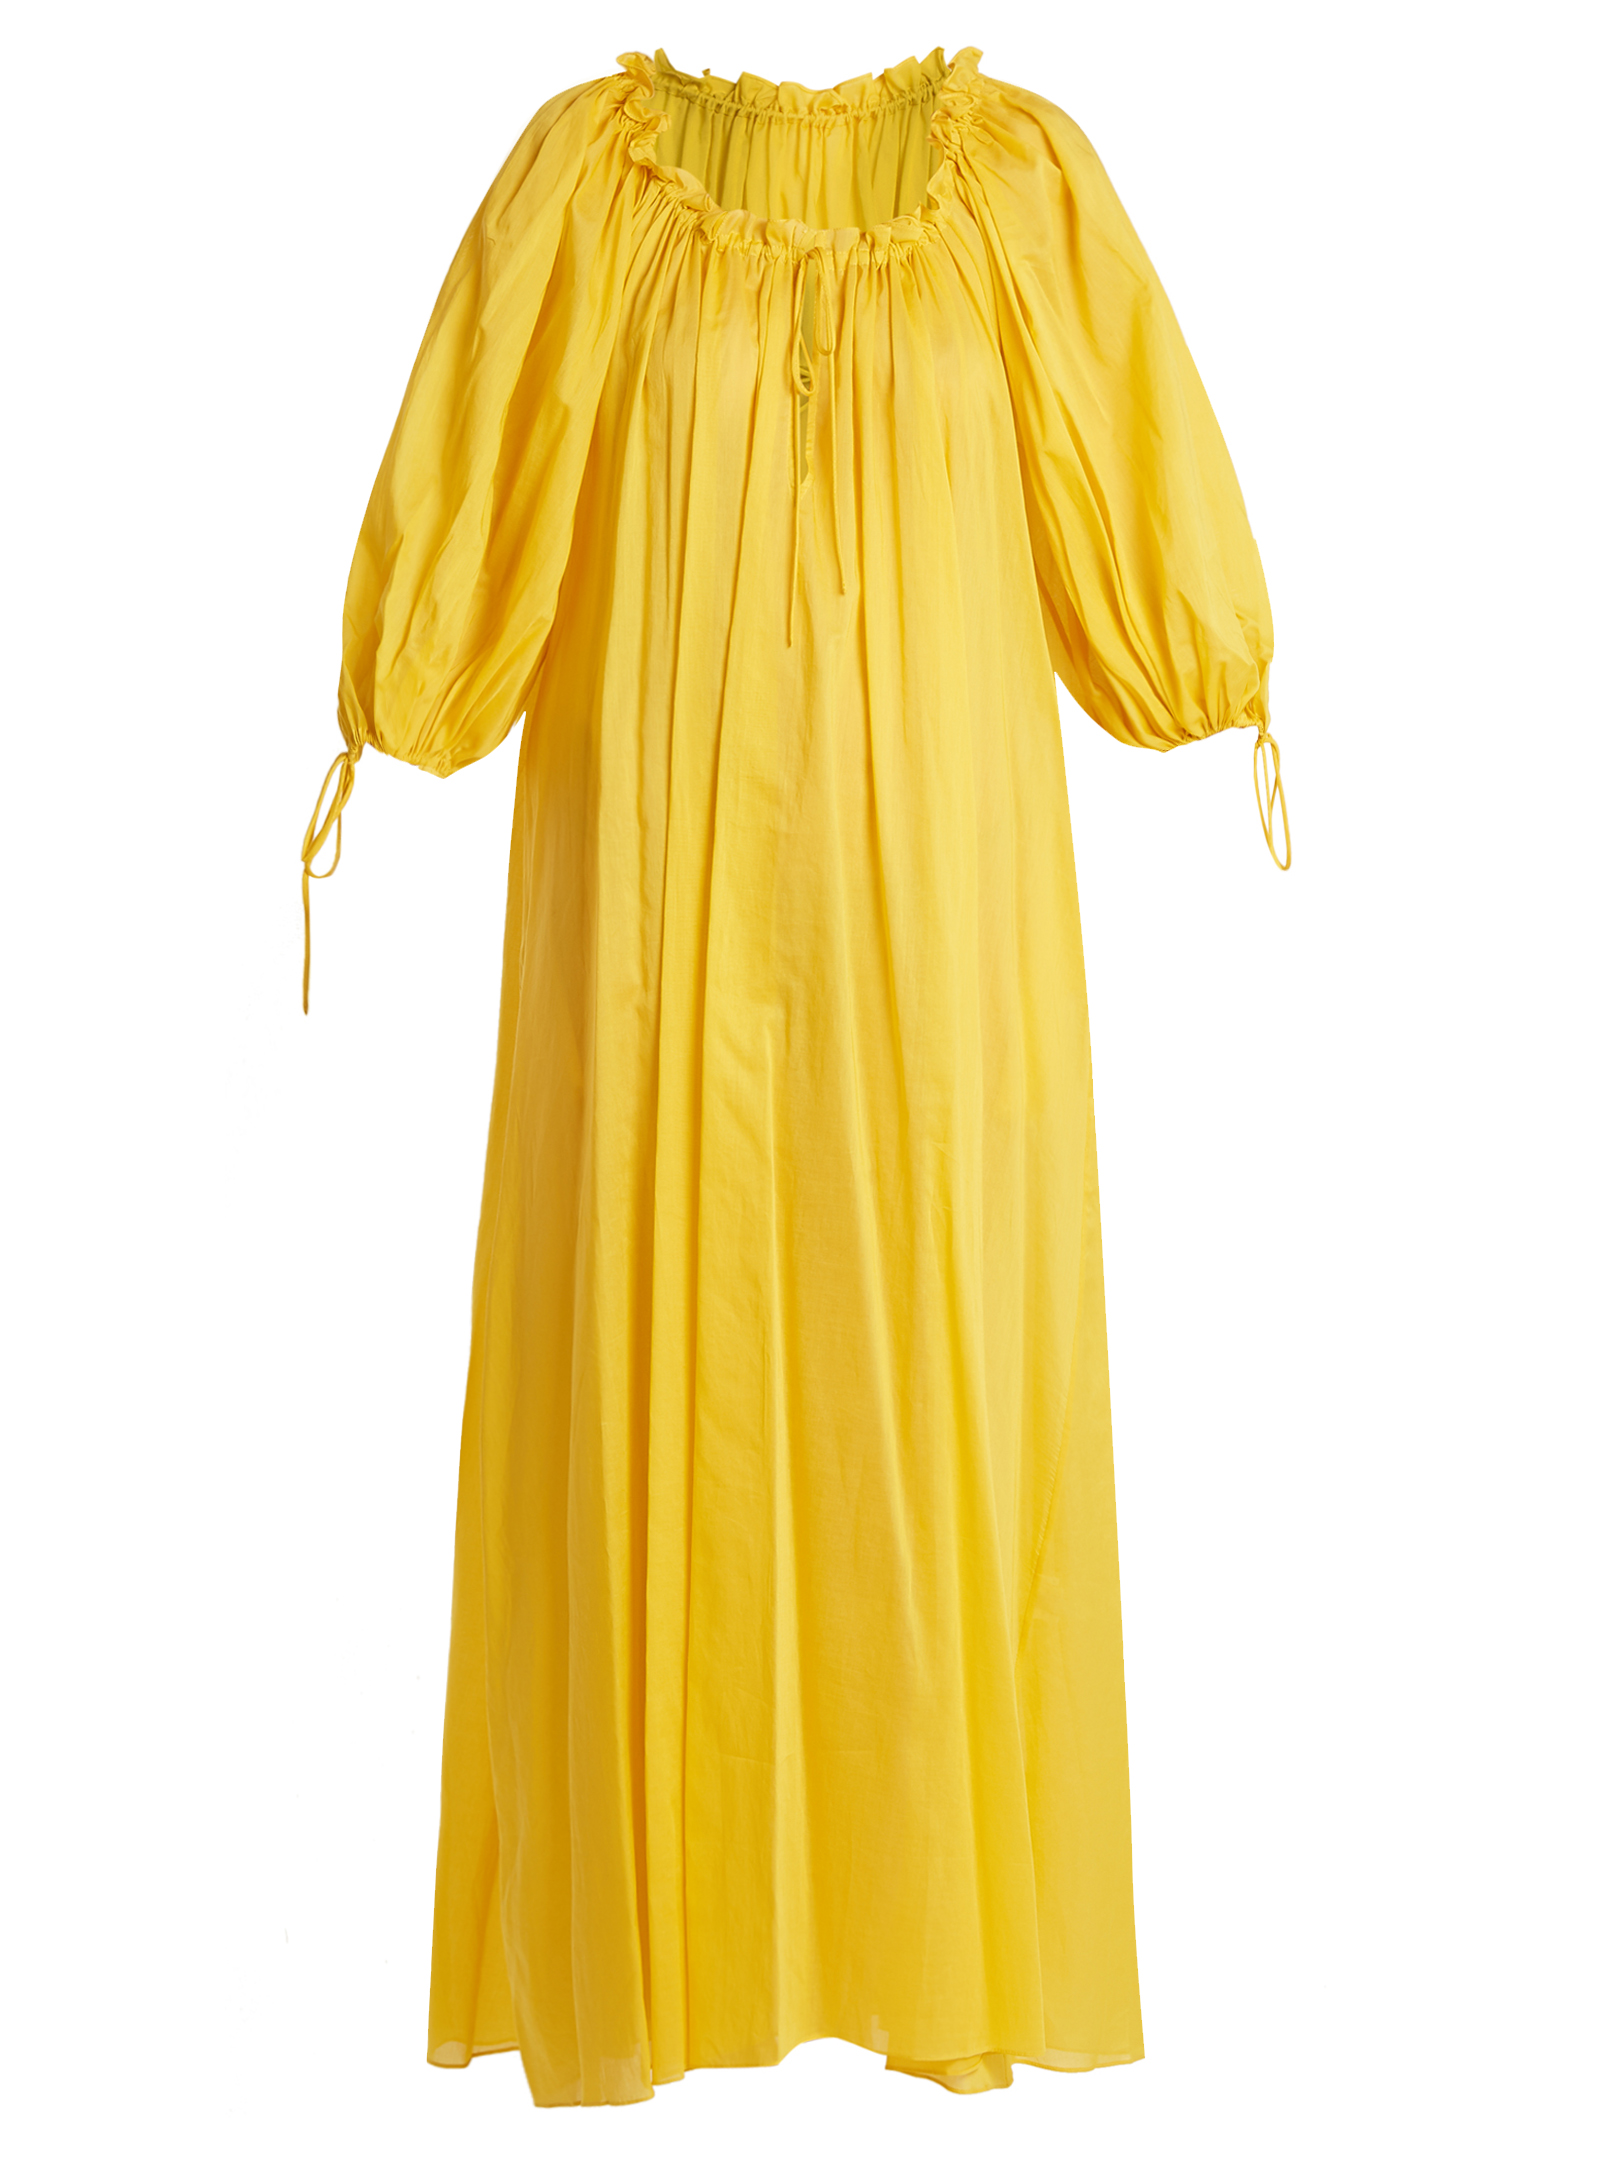 cest-clairette-three-graces-london-yellow-maxi-dress-july-2017